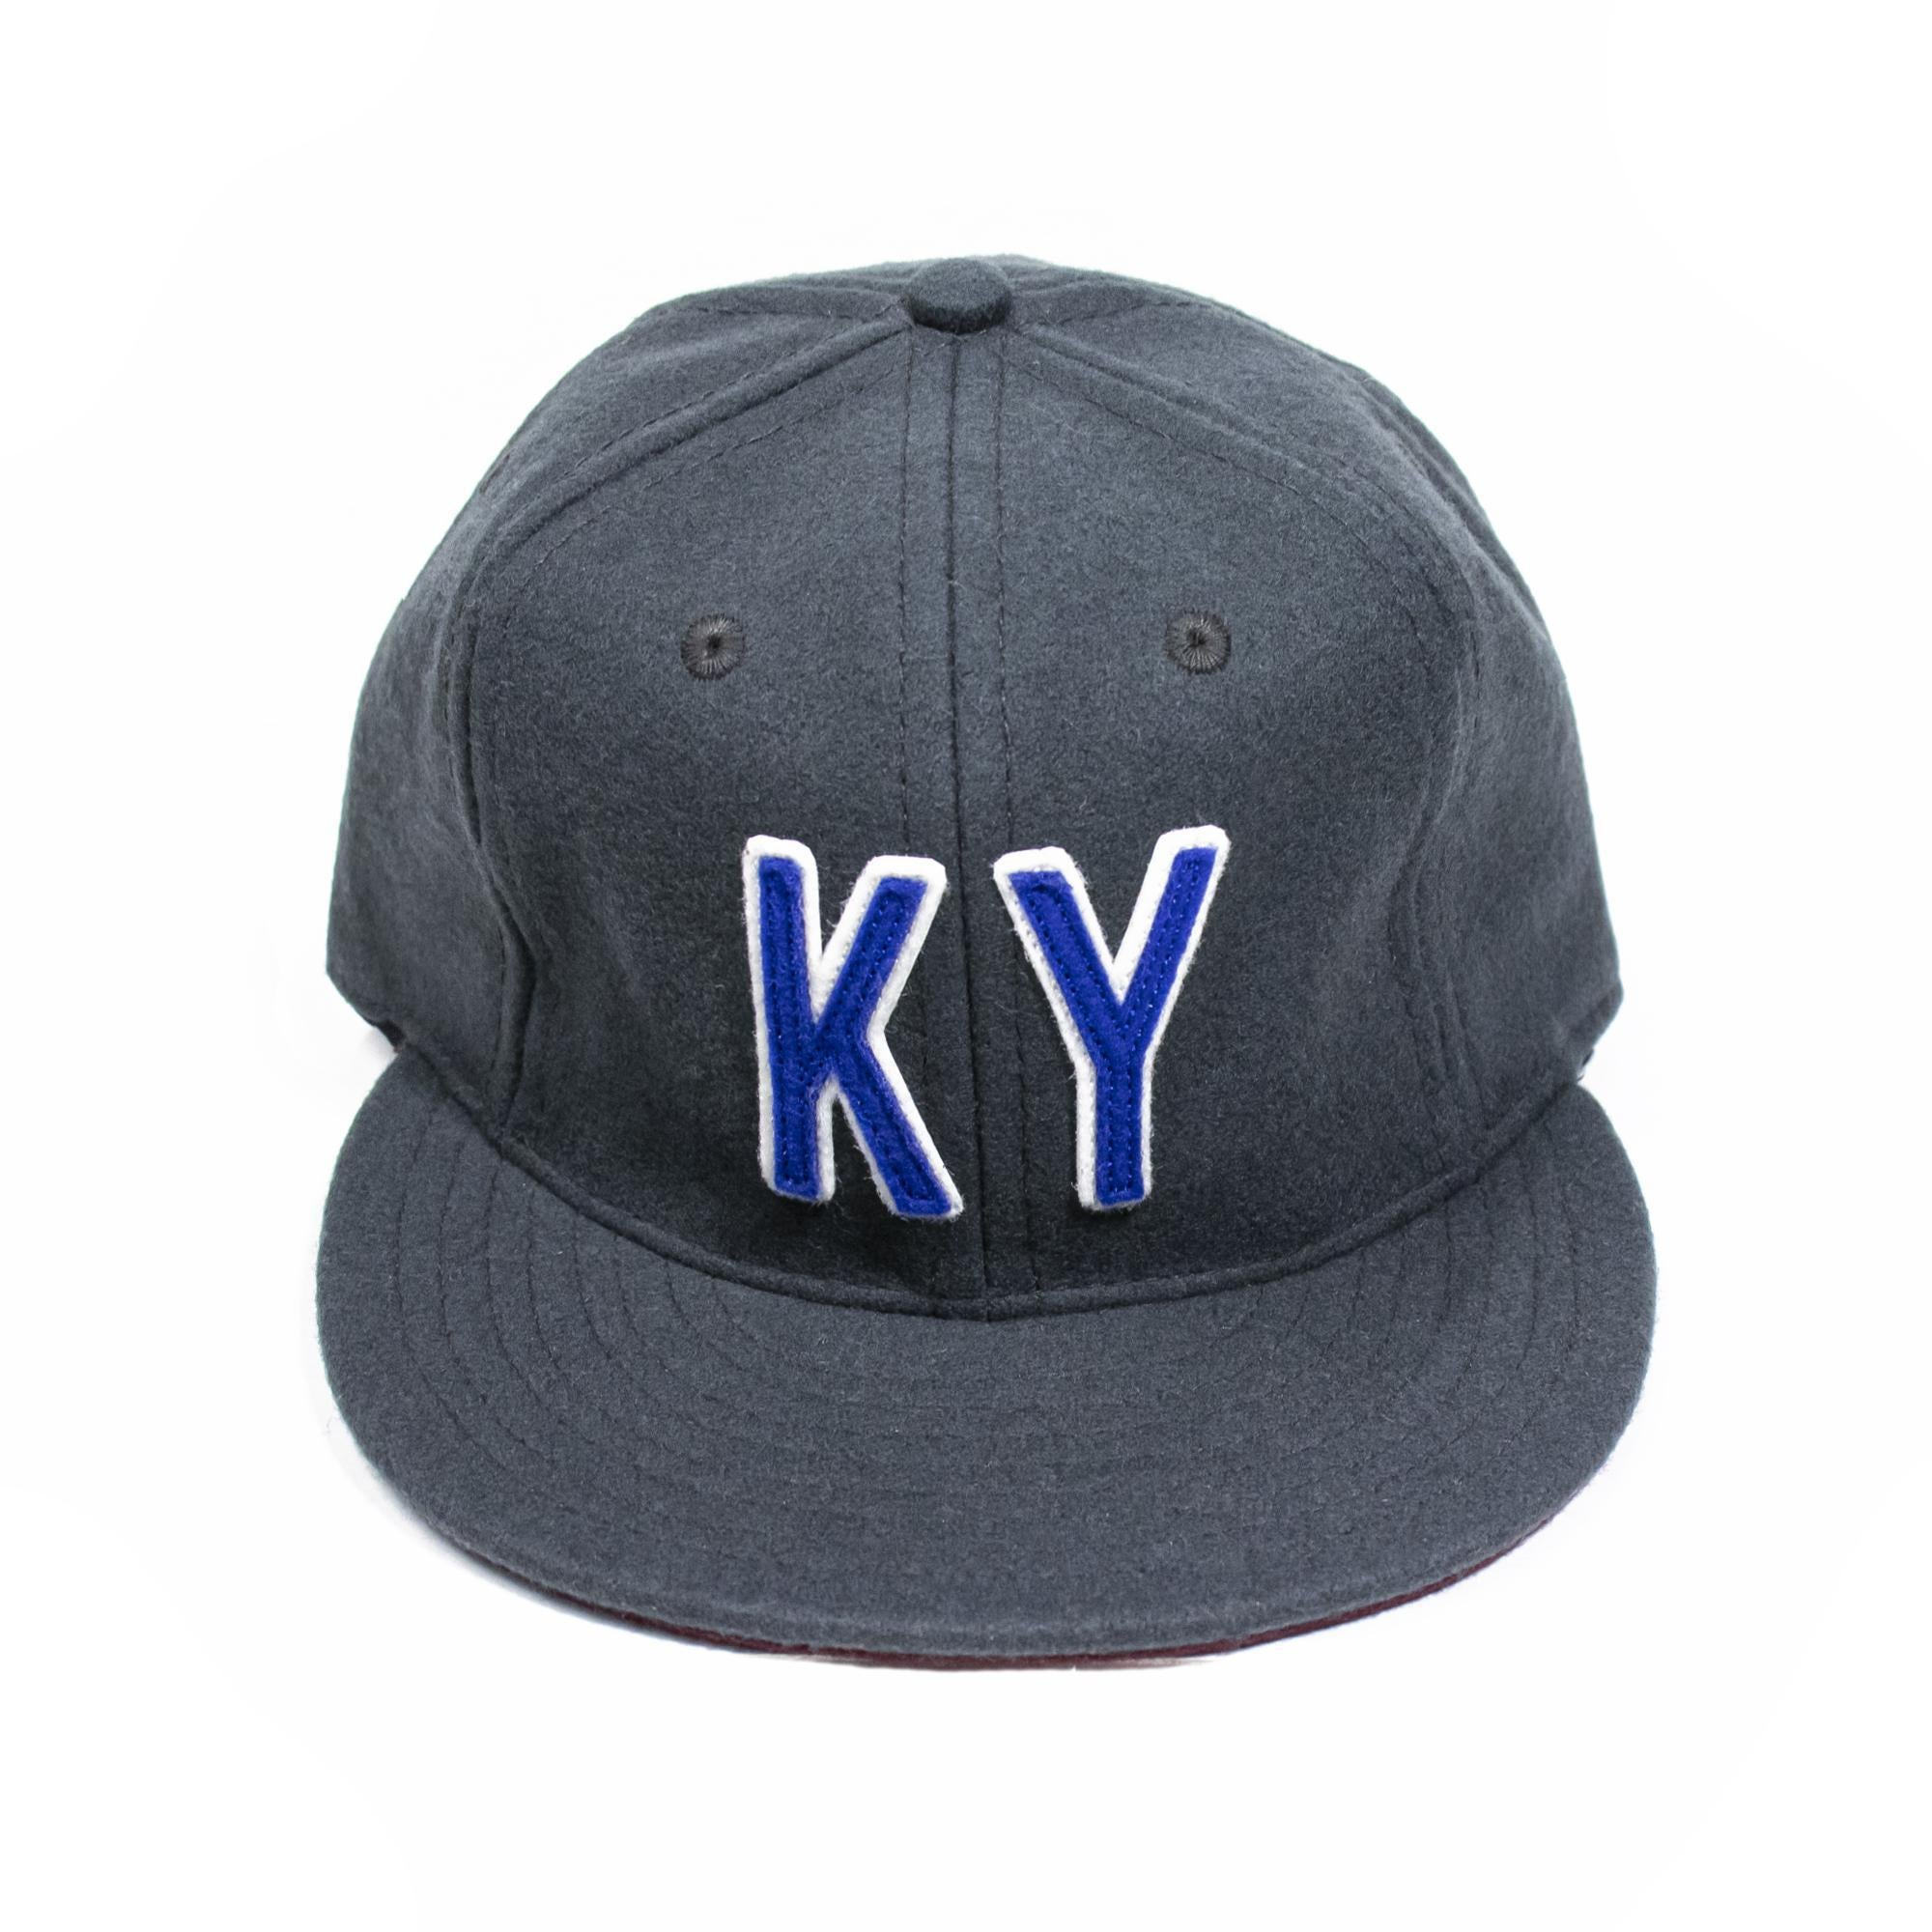 KY Ebbets Hat (Charcoal and Royal/White)-Hat-KY for KY Store